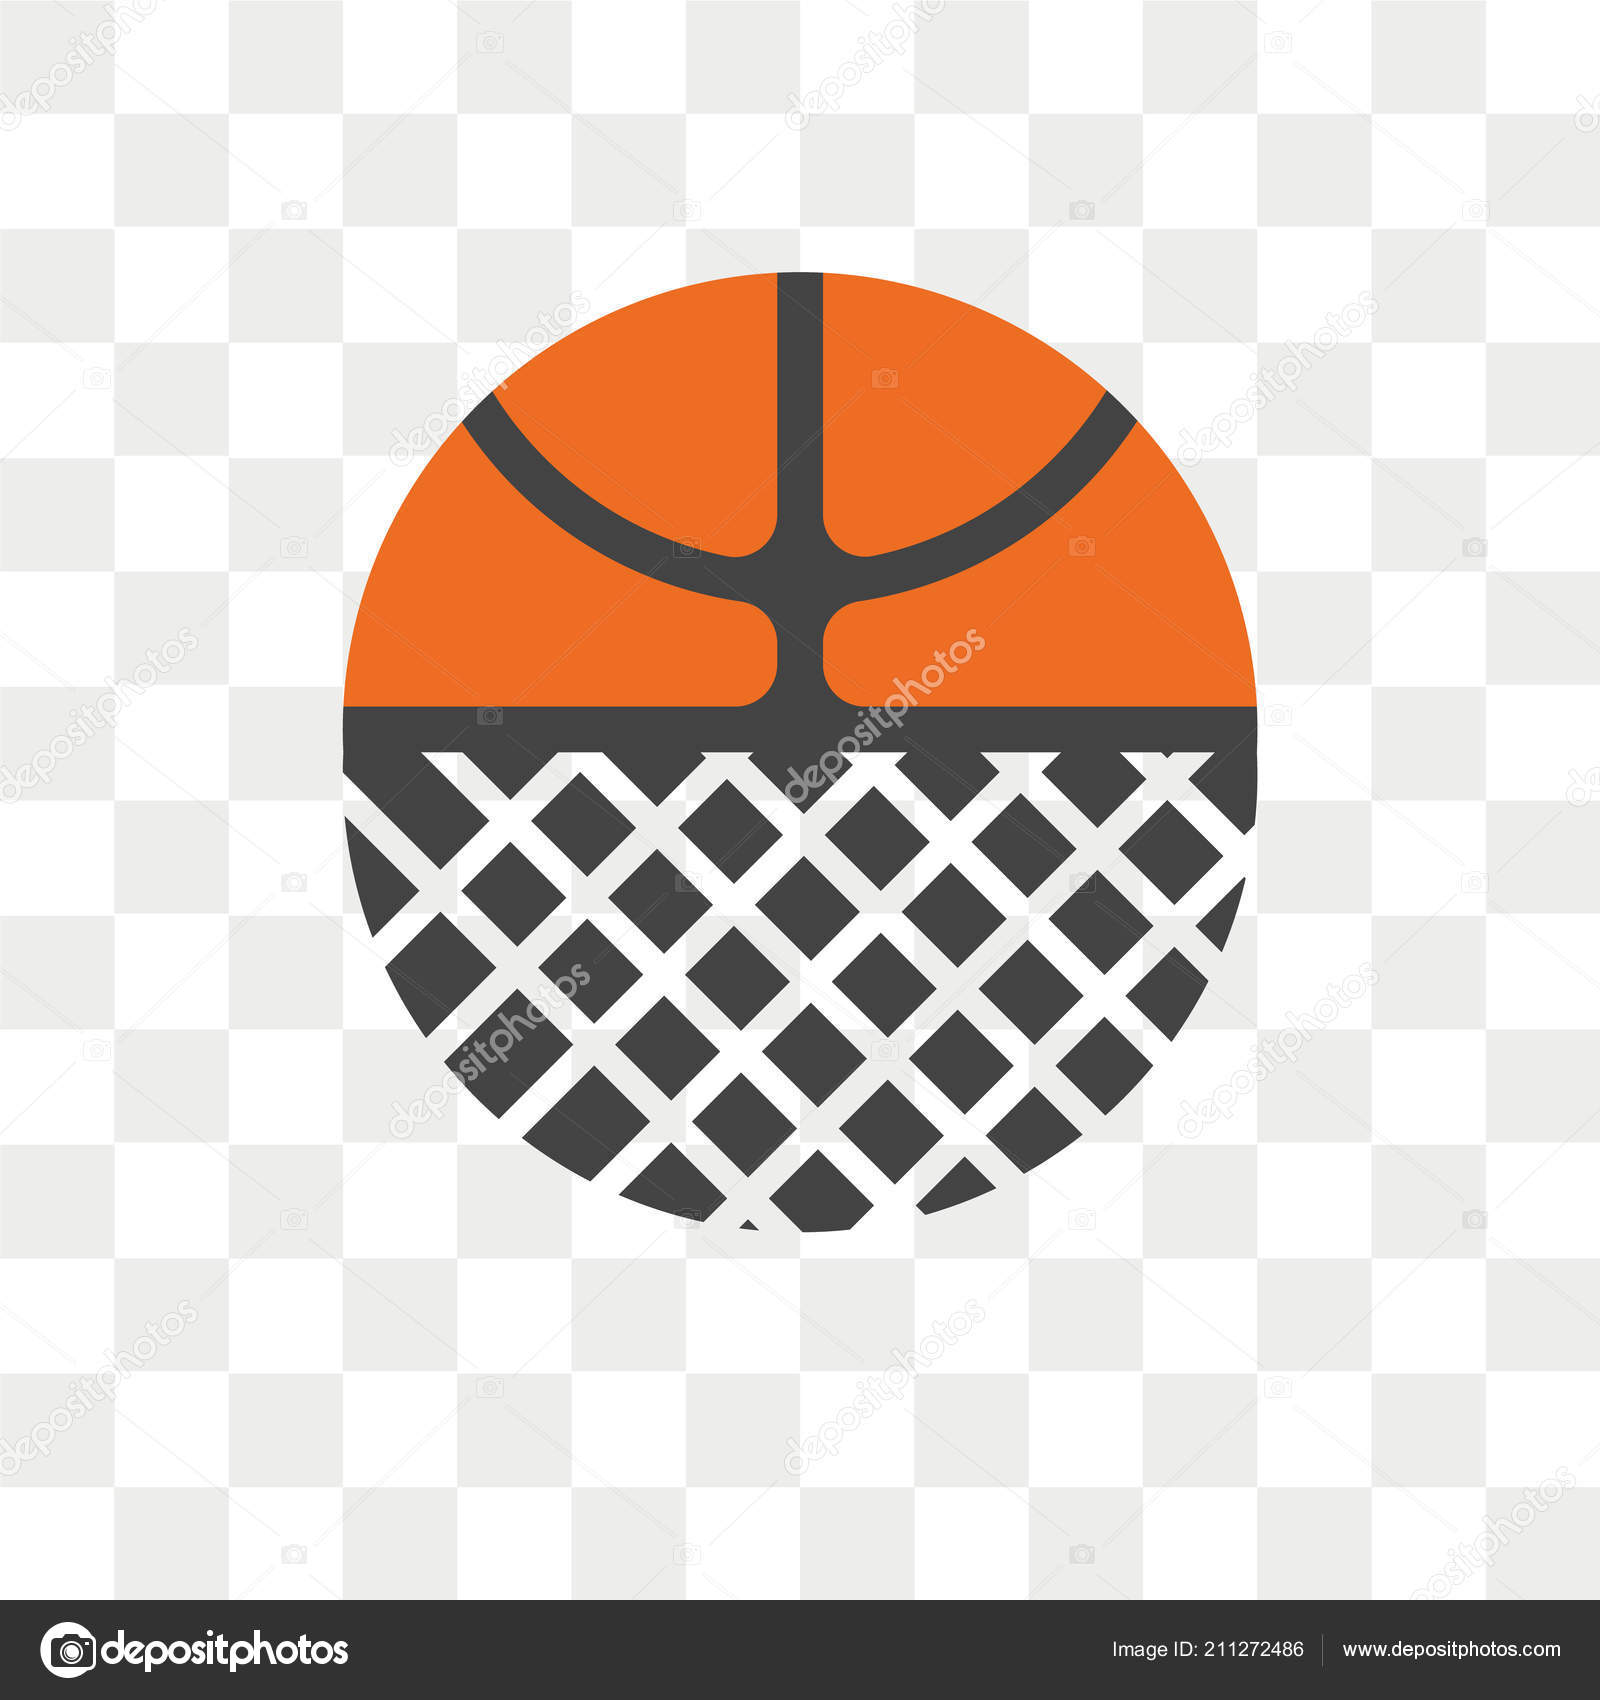 Basketball logo png | Basketball Vector Icon Isolated